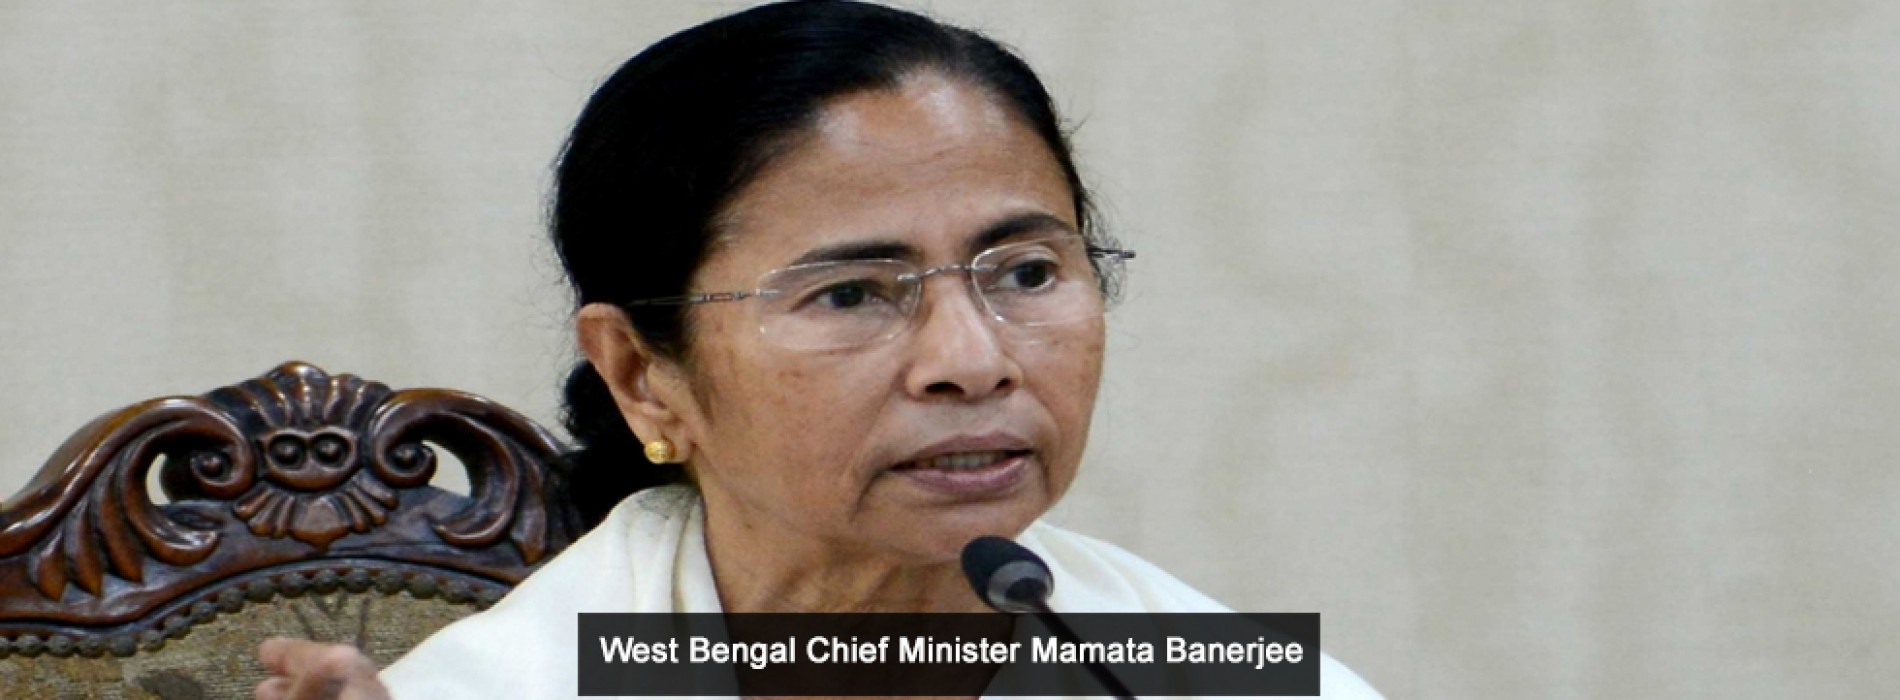 Mamata Banerjee slams decision to stop 8 railway routes in Bengal